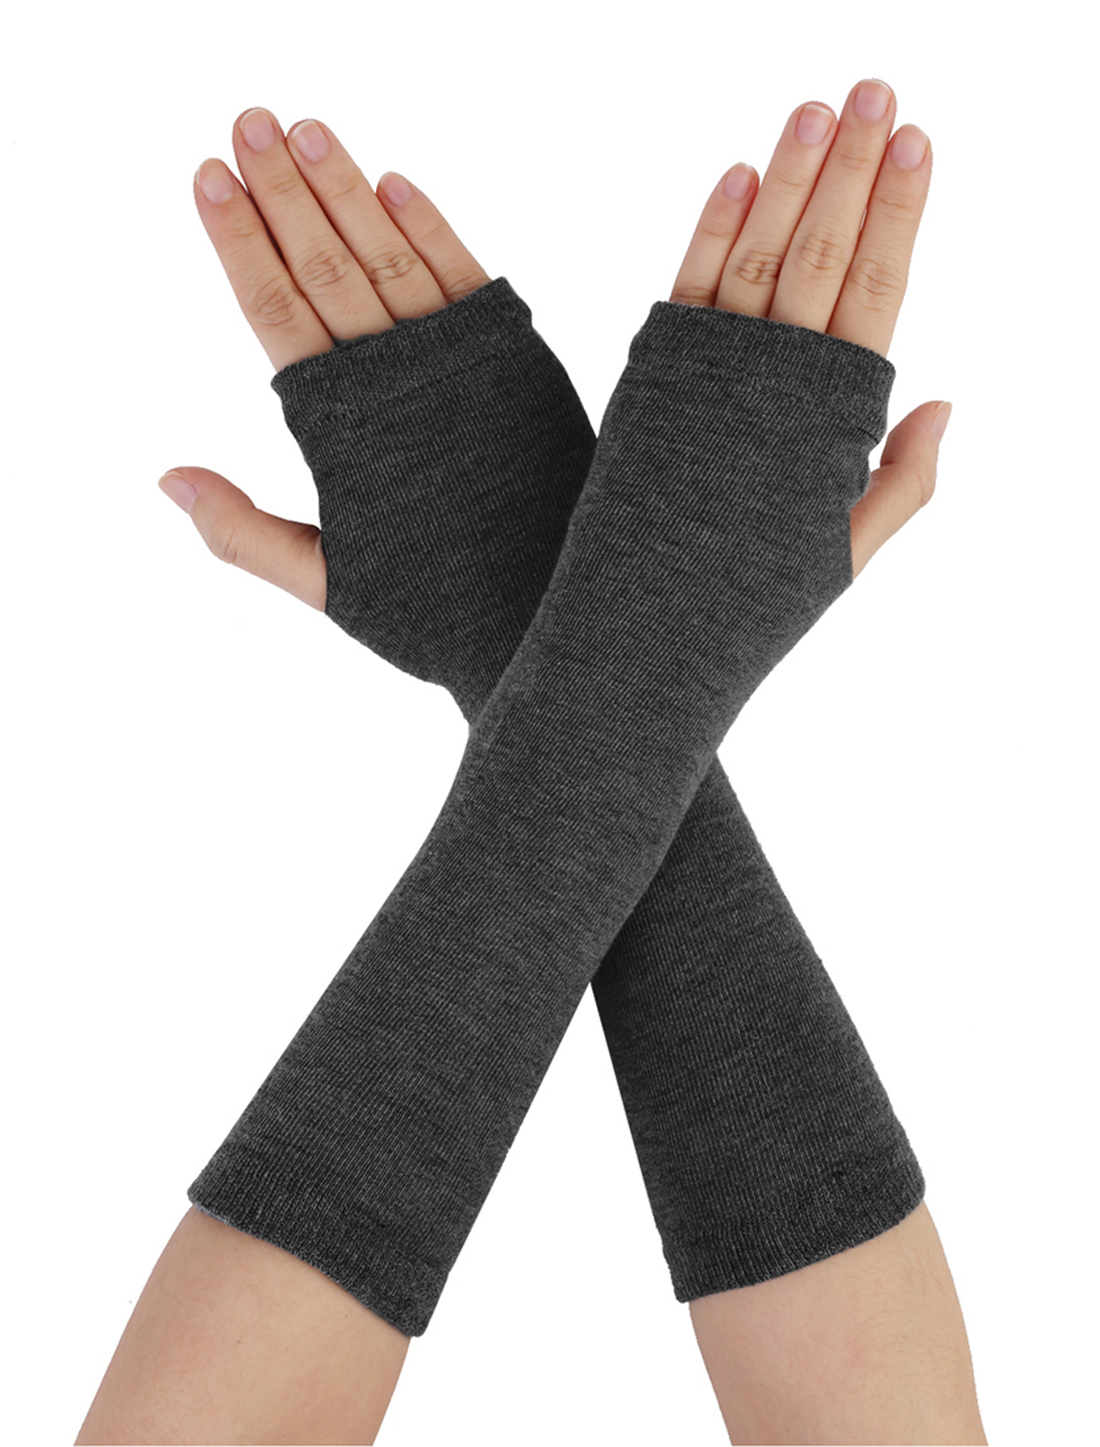 Pair Solid Gray Stretchy Fingerless Winter Arm Warmers Gloves for Ladies